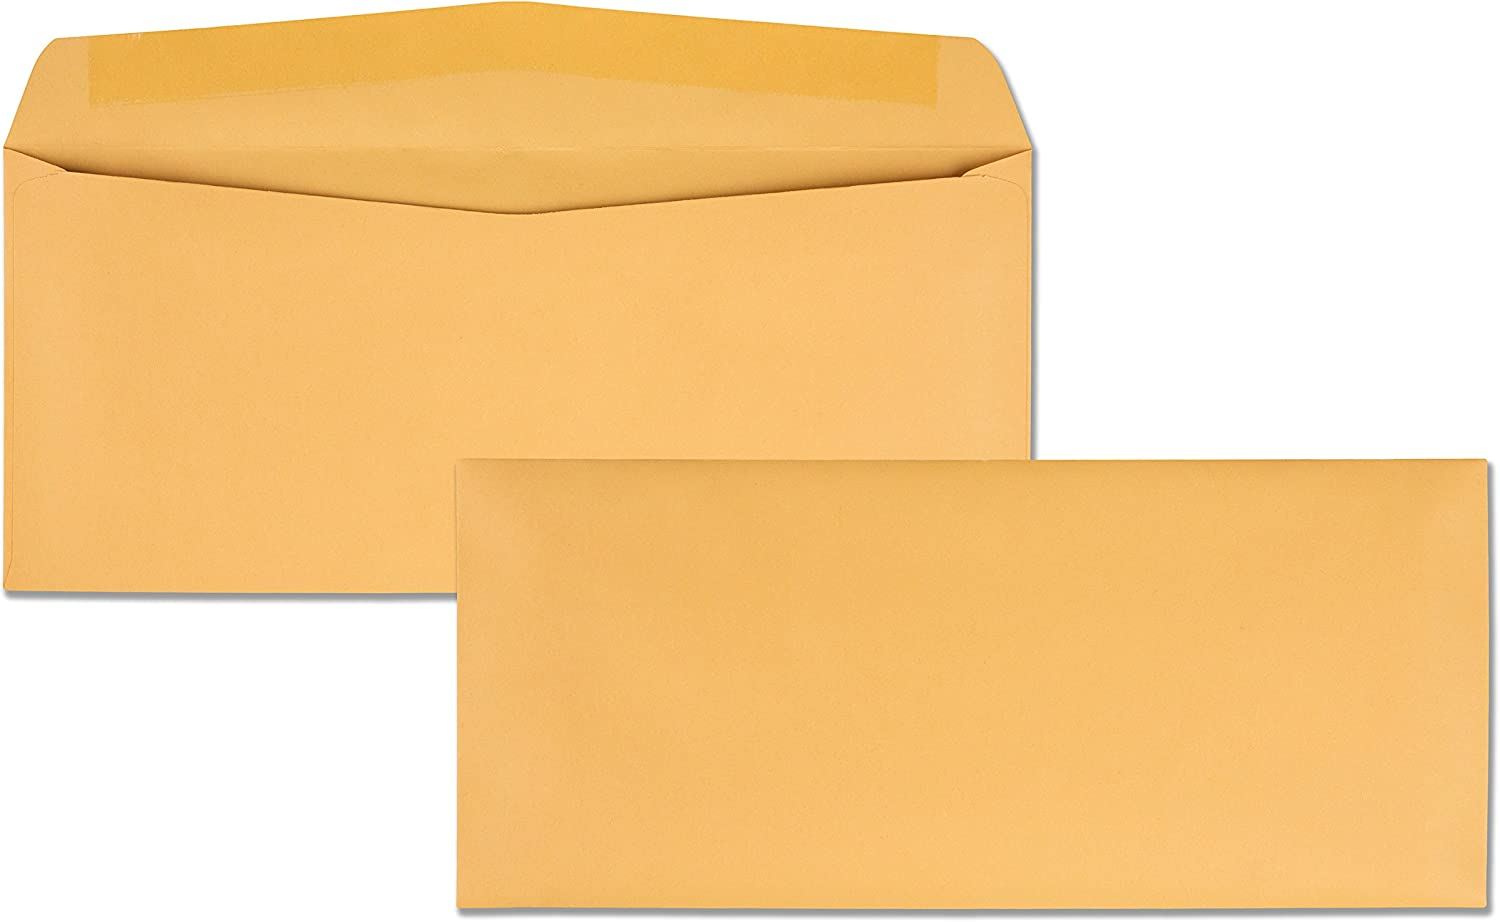 12 x 28x40 Envelopes bustacarta Gift White Nylon